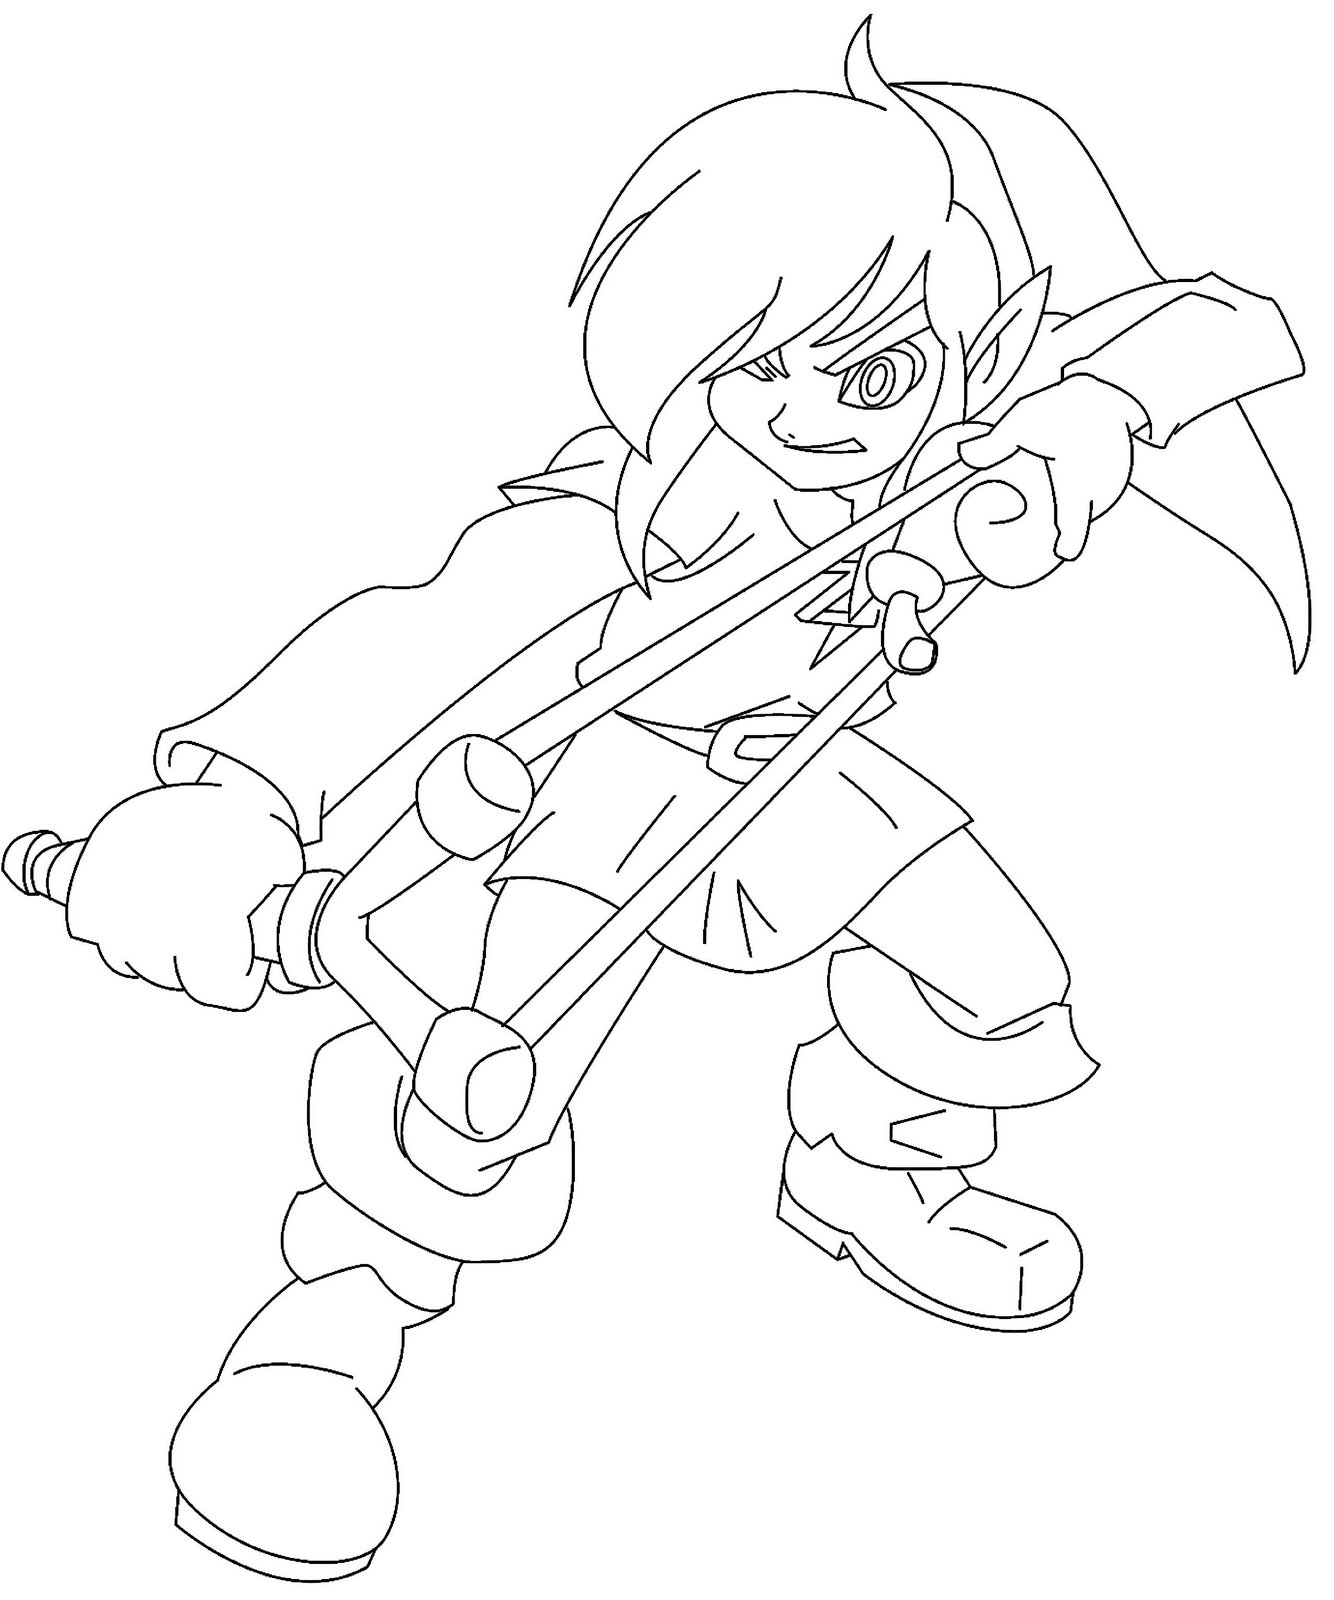 Link Coloring Pages Best Free Printable Zelda Coloring Pages For Kids